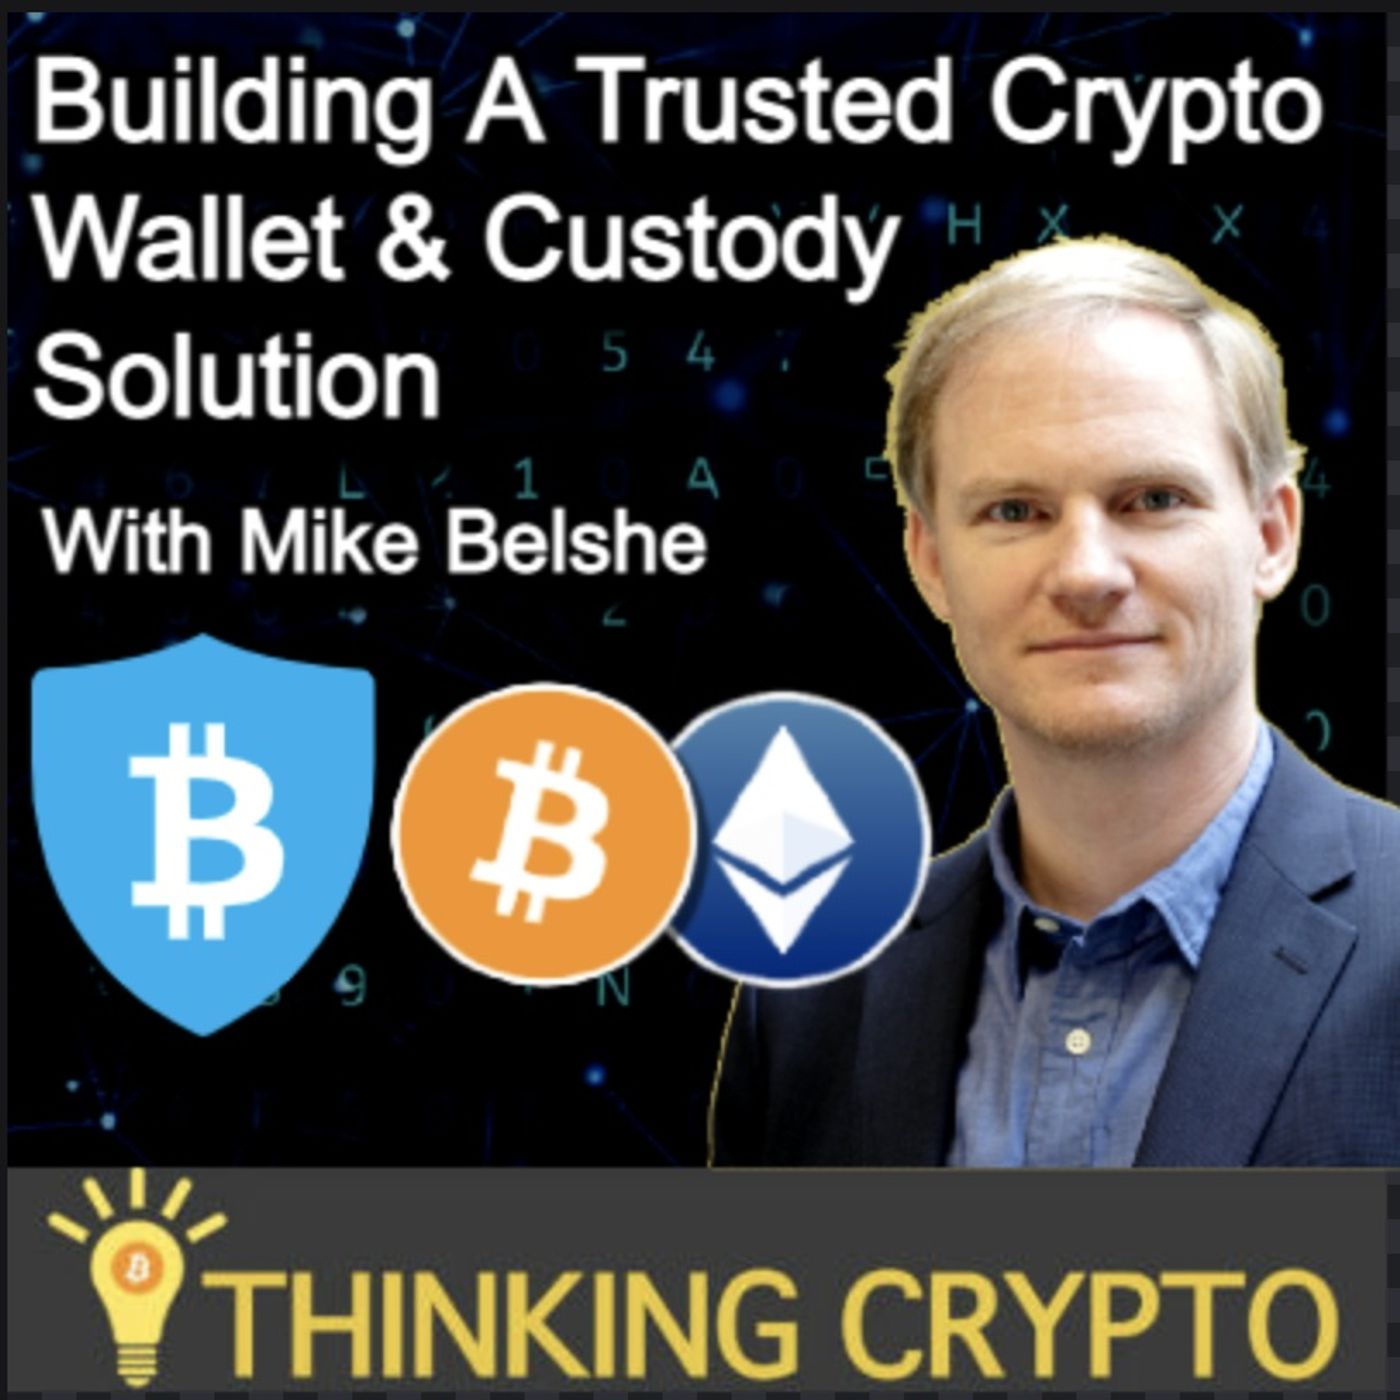 Mike Belshe Interview - BitGo's Crypto Wallet & Custody - Galaxy Digital Acquisition - Bitcoin, Crypto Regulations, DeFi